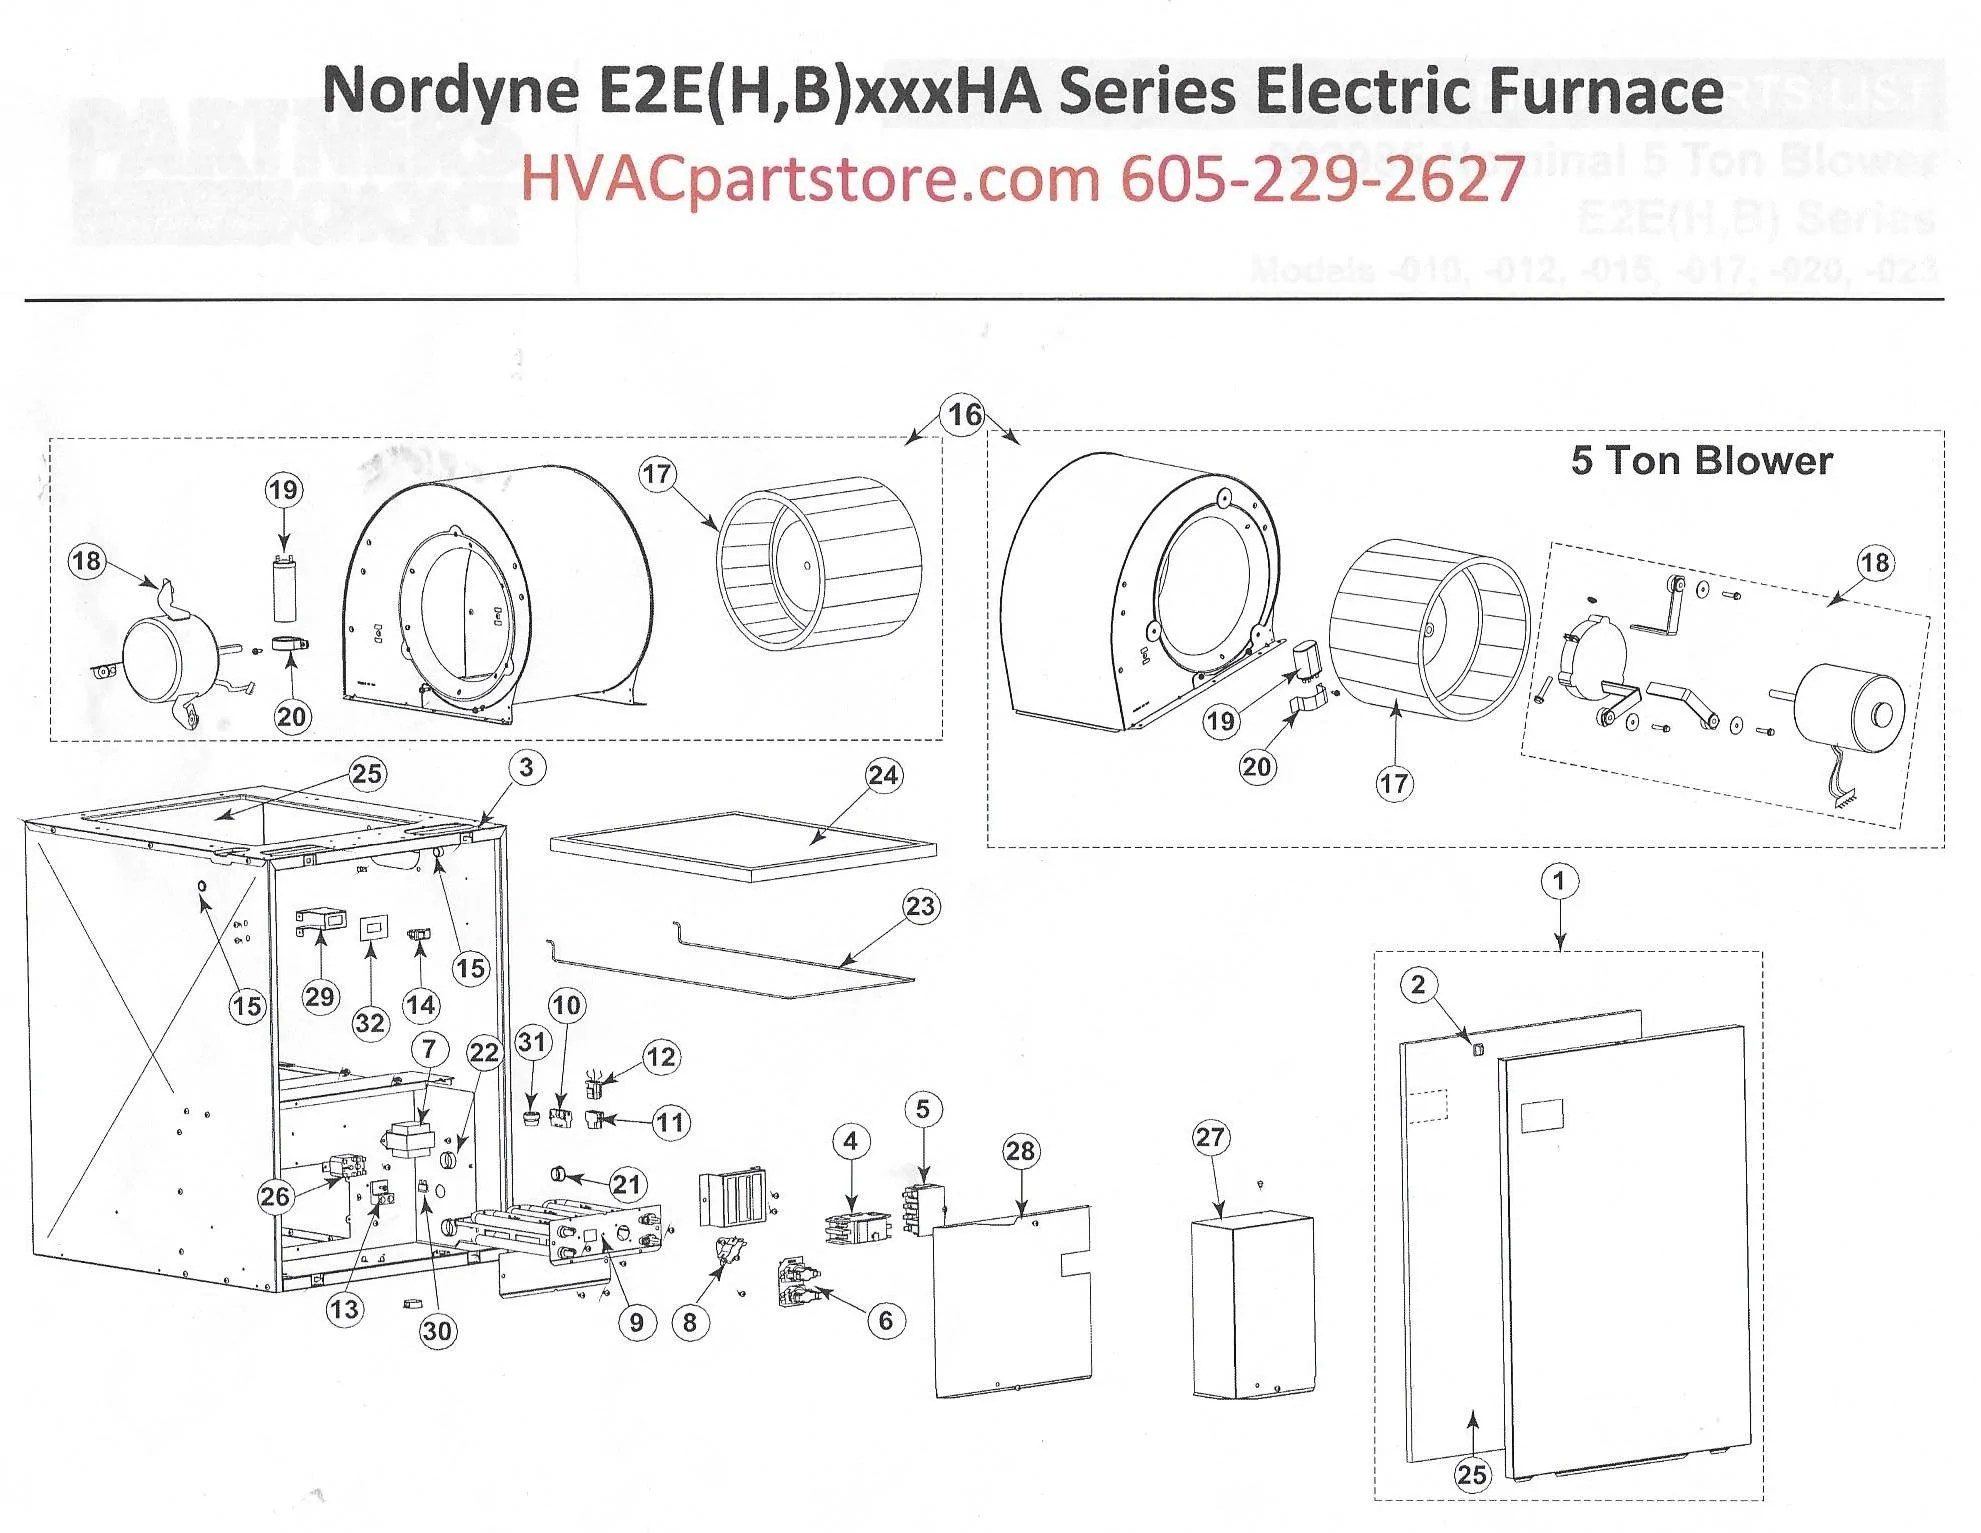 small resolution of e2eh012ha nordyne electric furnace parts hvacpartstore nordyne electric furnace diagram